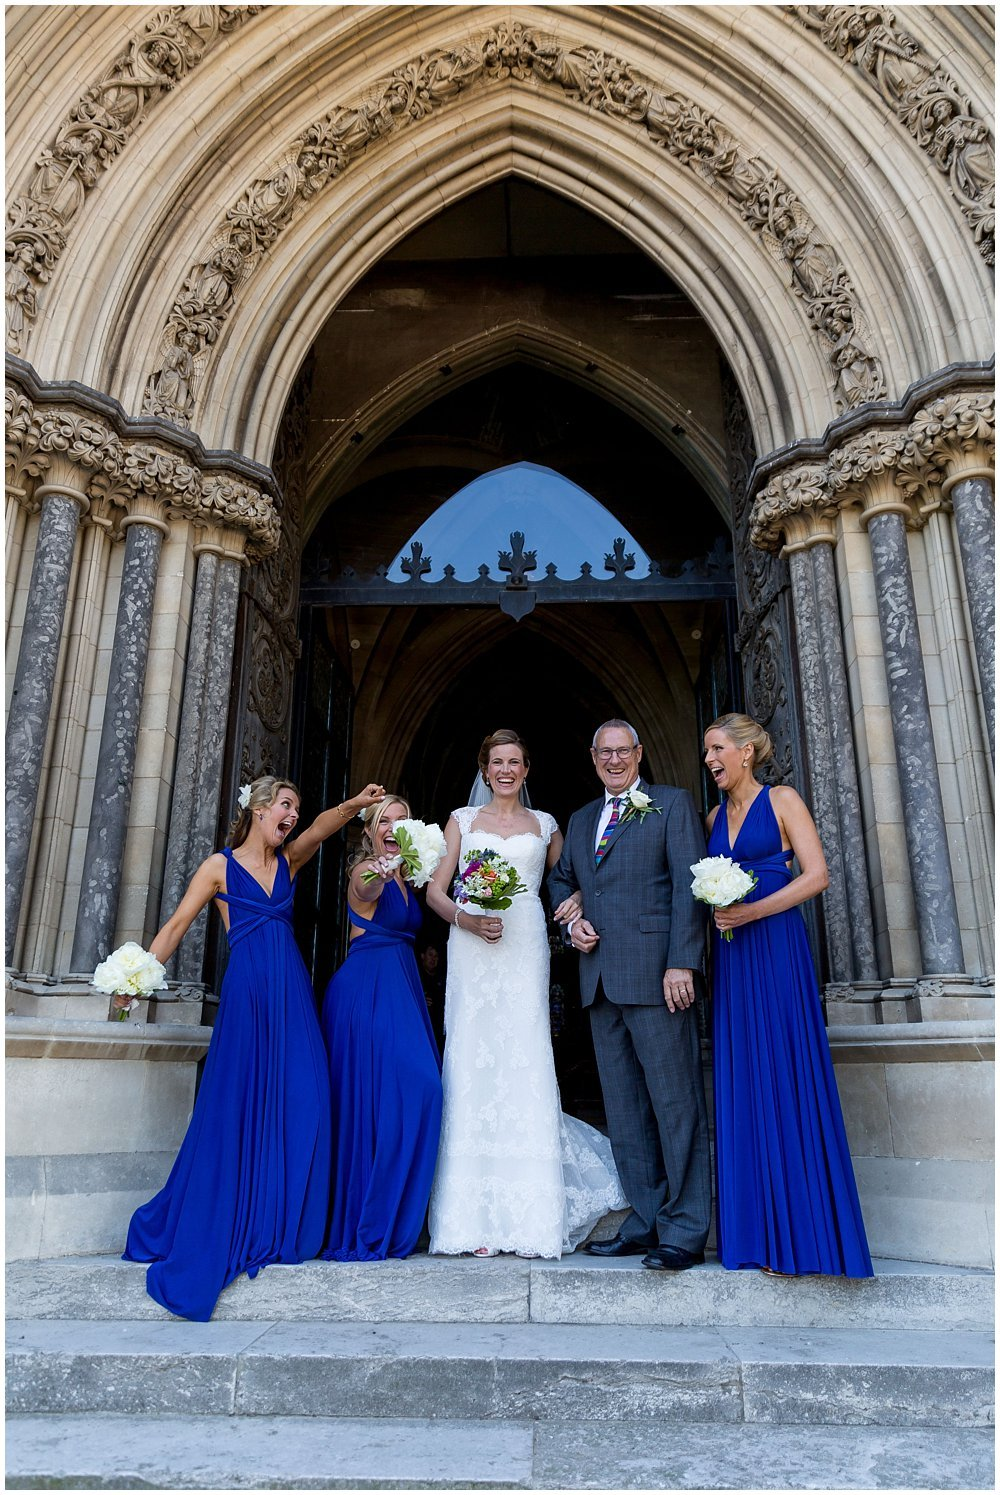 AMY AND DUNCAN NORWICH CATHEDRAL AND THE BOATHOUSE WEDDING - NORWICH AND NORFOLK WEDDING PHOTOGRAPHER 9